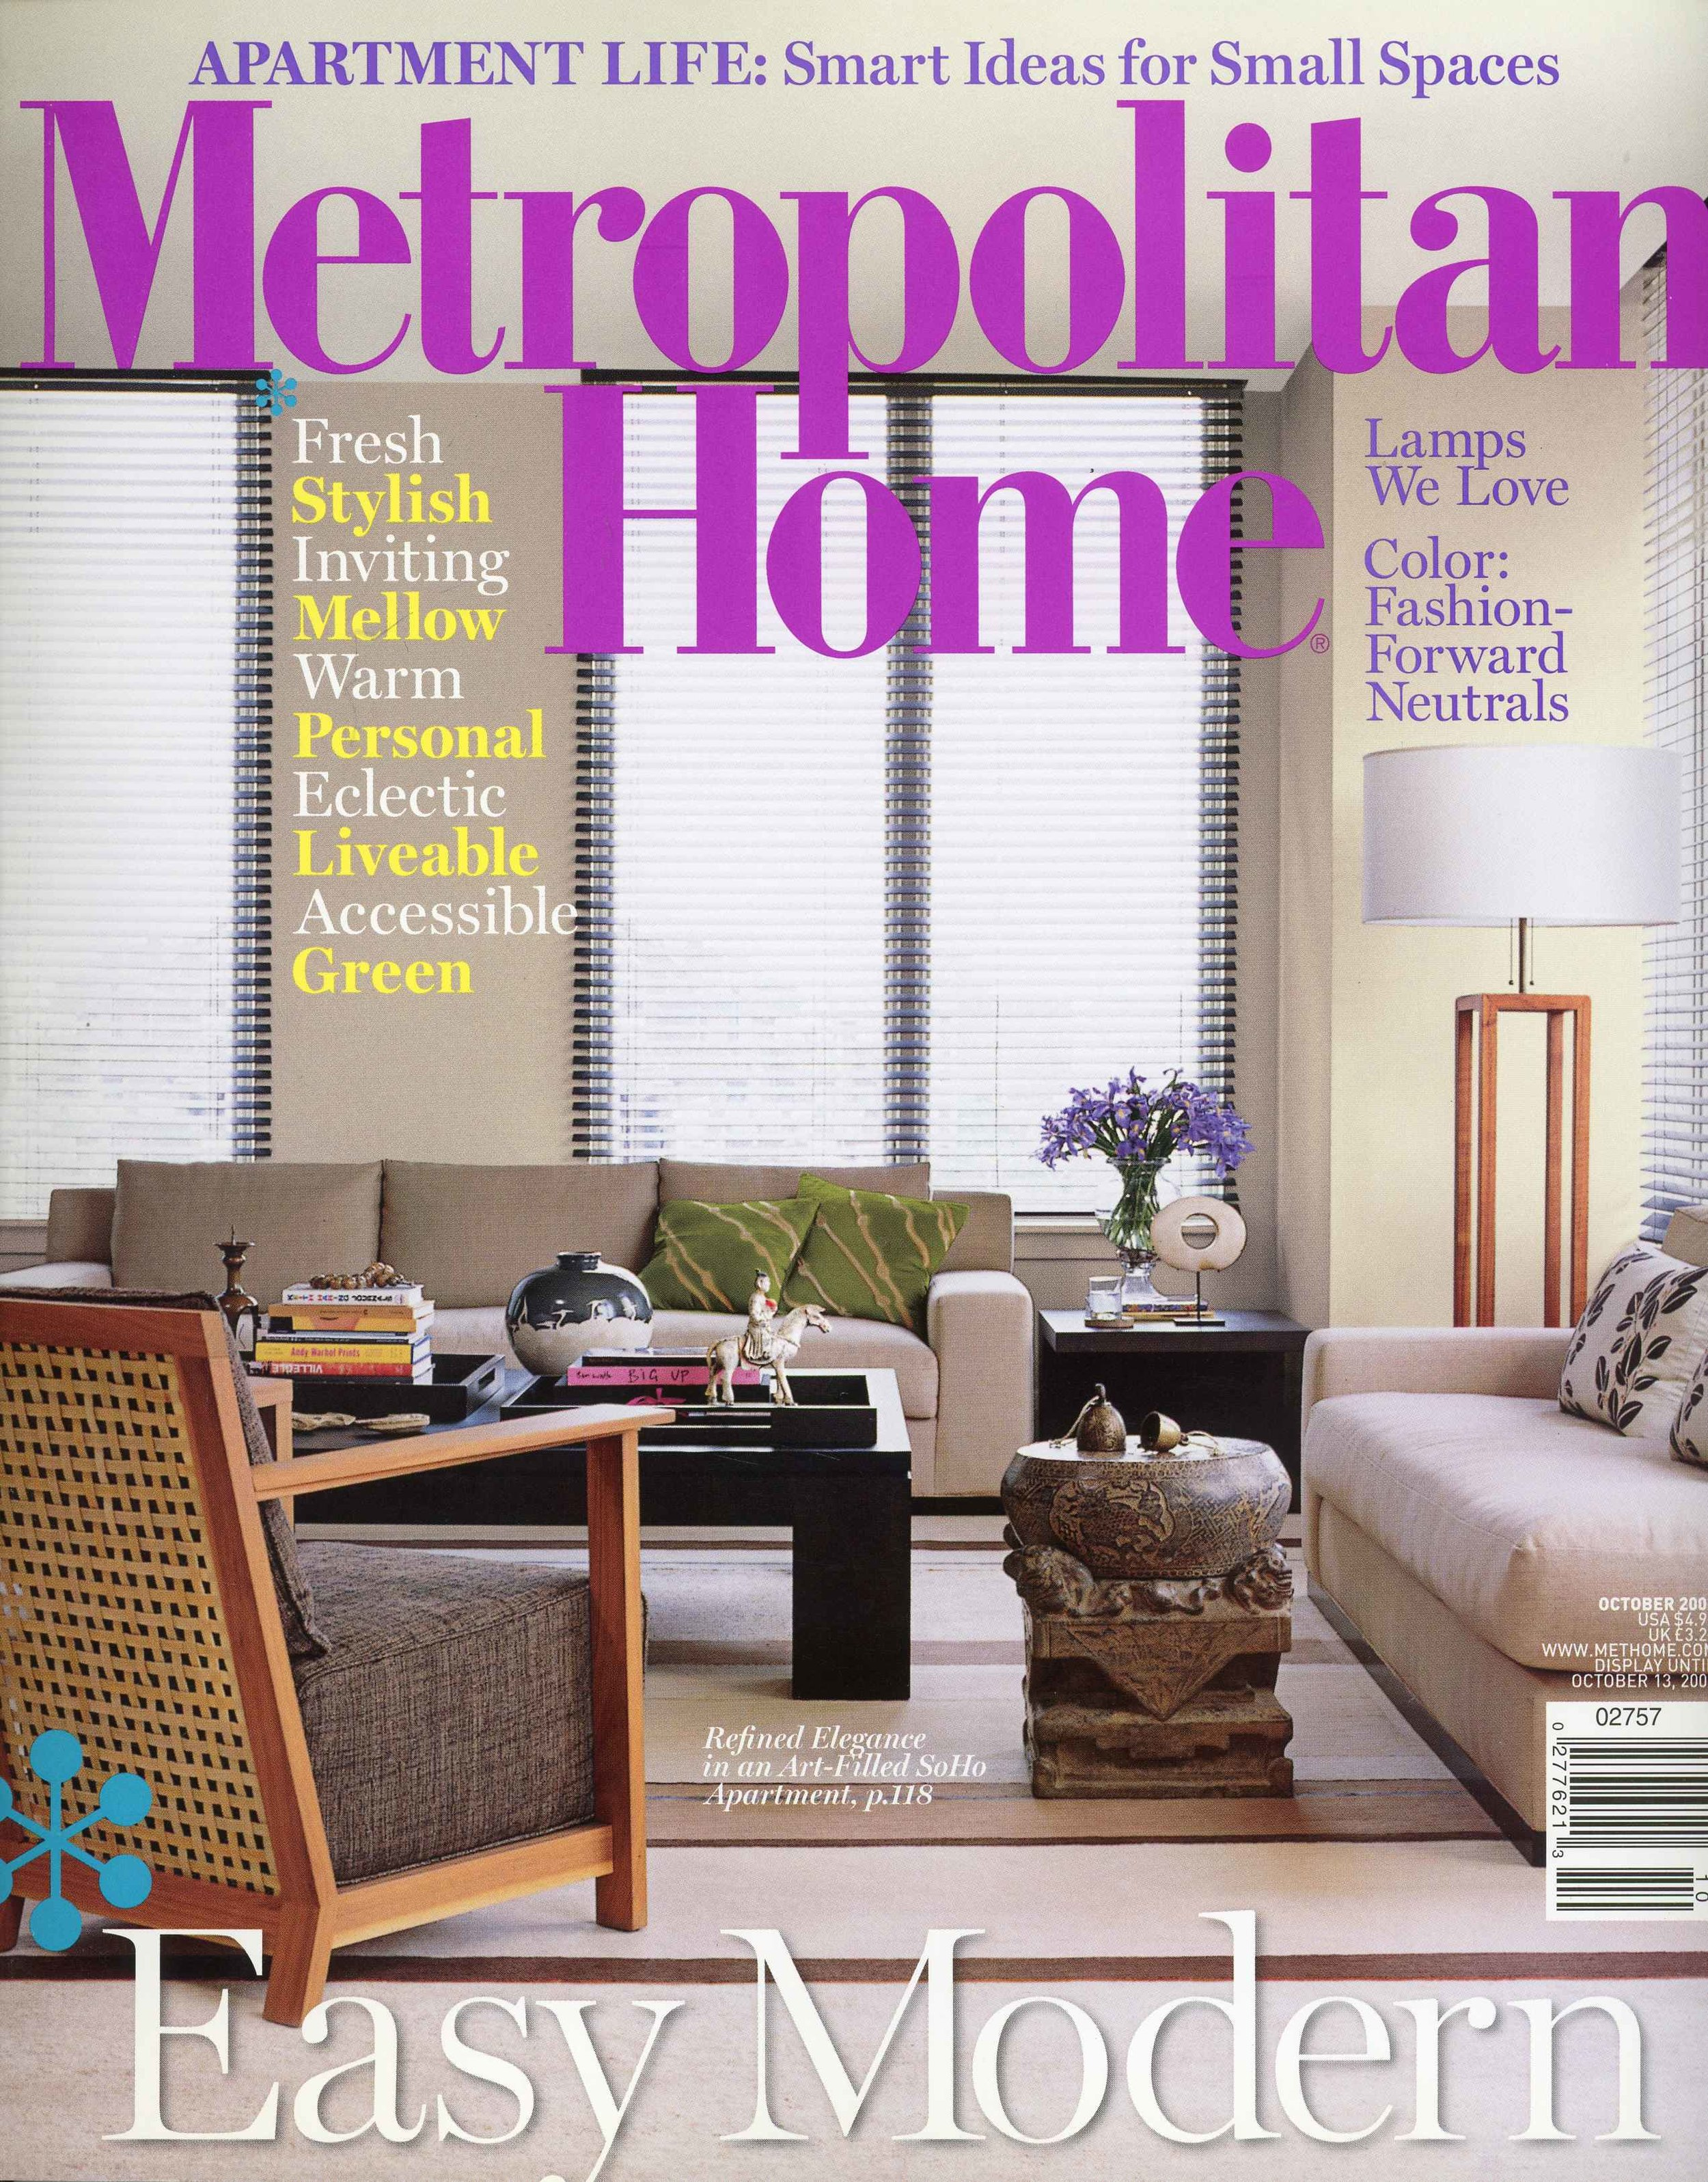 Met Home_Oct 08_Full Article 2_Page_01.jpg